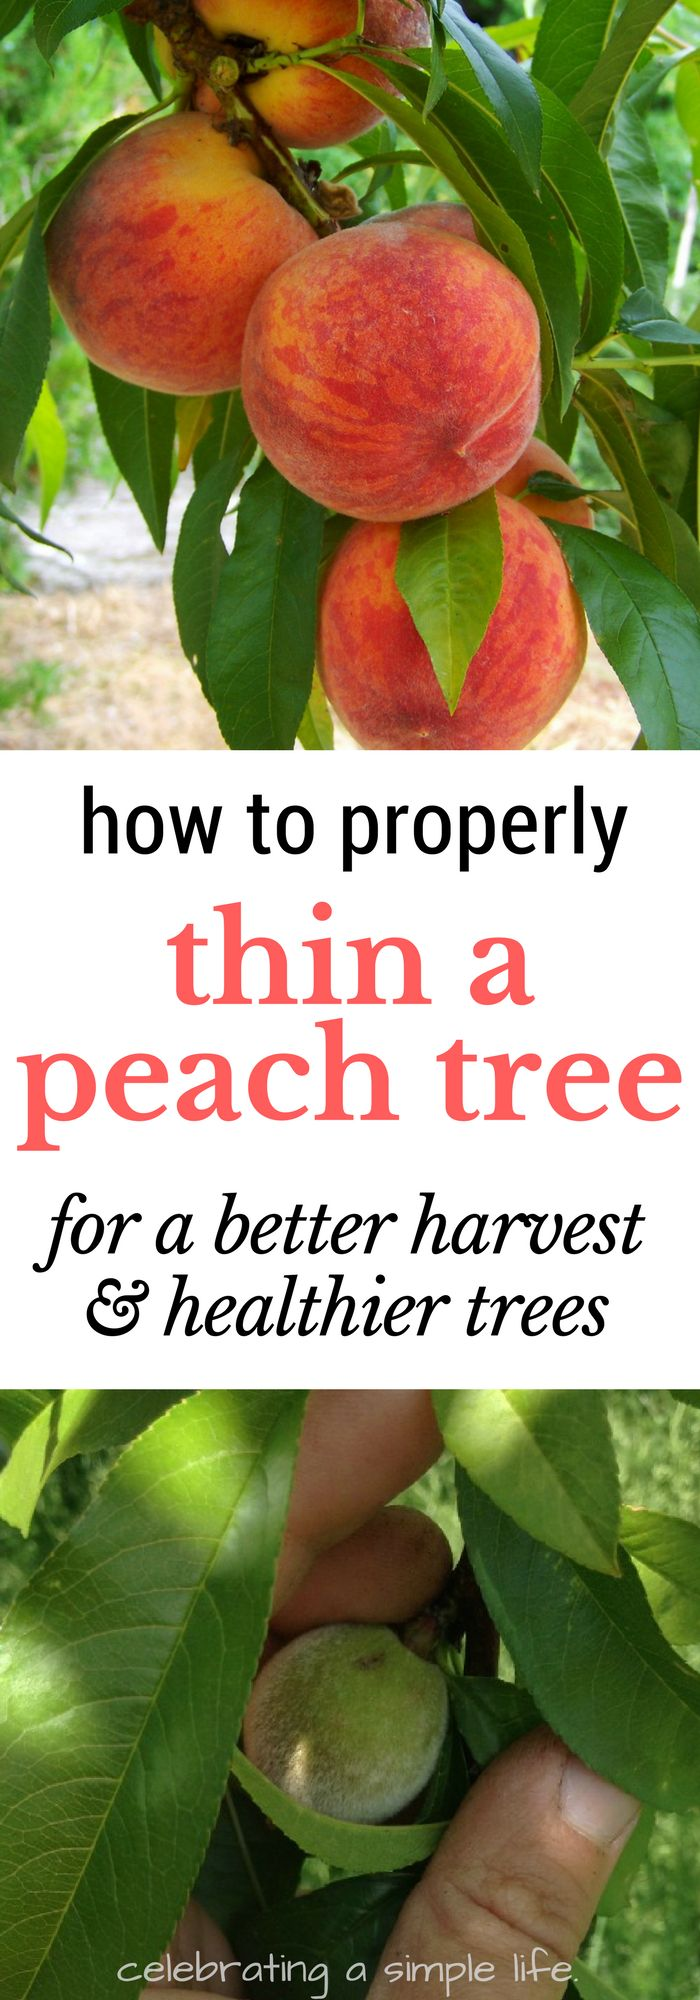 Did you know that peach trees really MUST be thinned for the best harvest, and also for the health of your peach tree? Here's how to do it! #gardening #orchard #permaculture #homesteading #farming